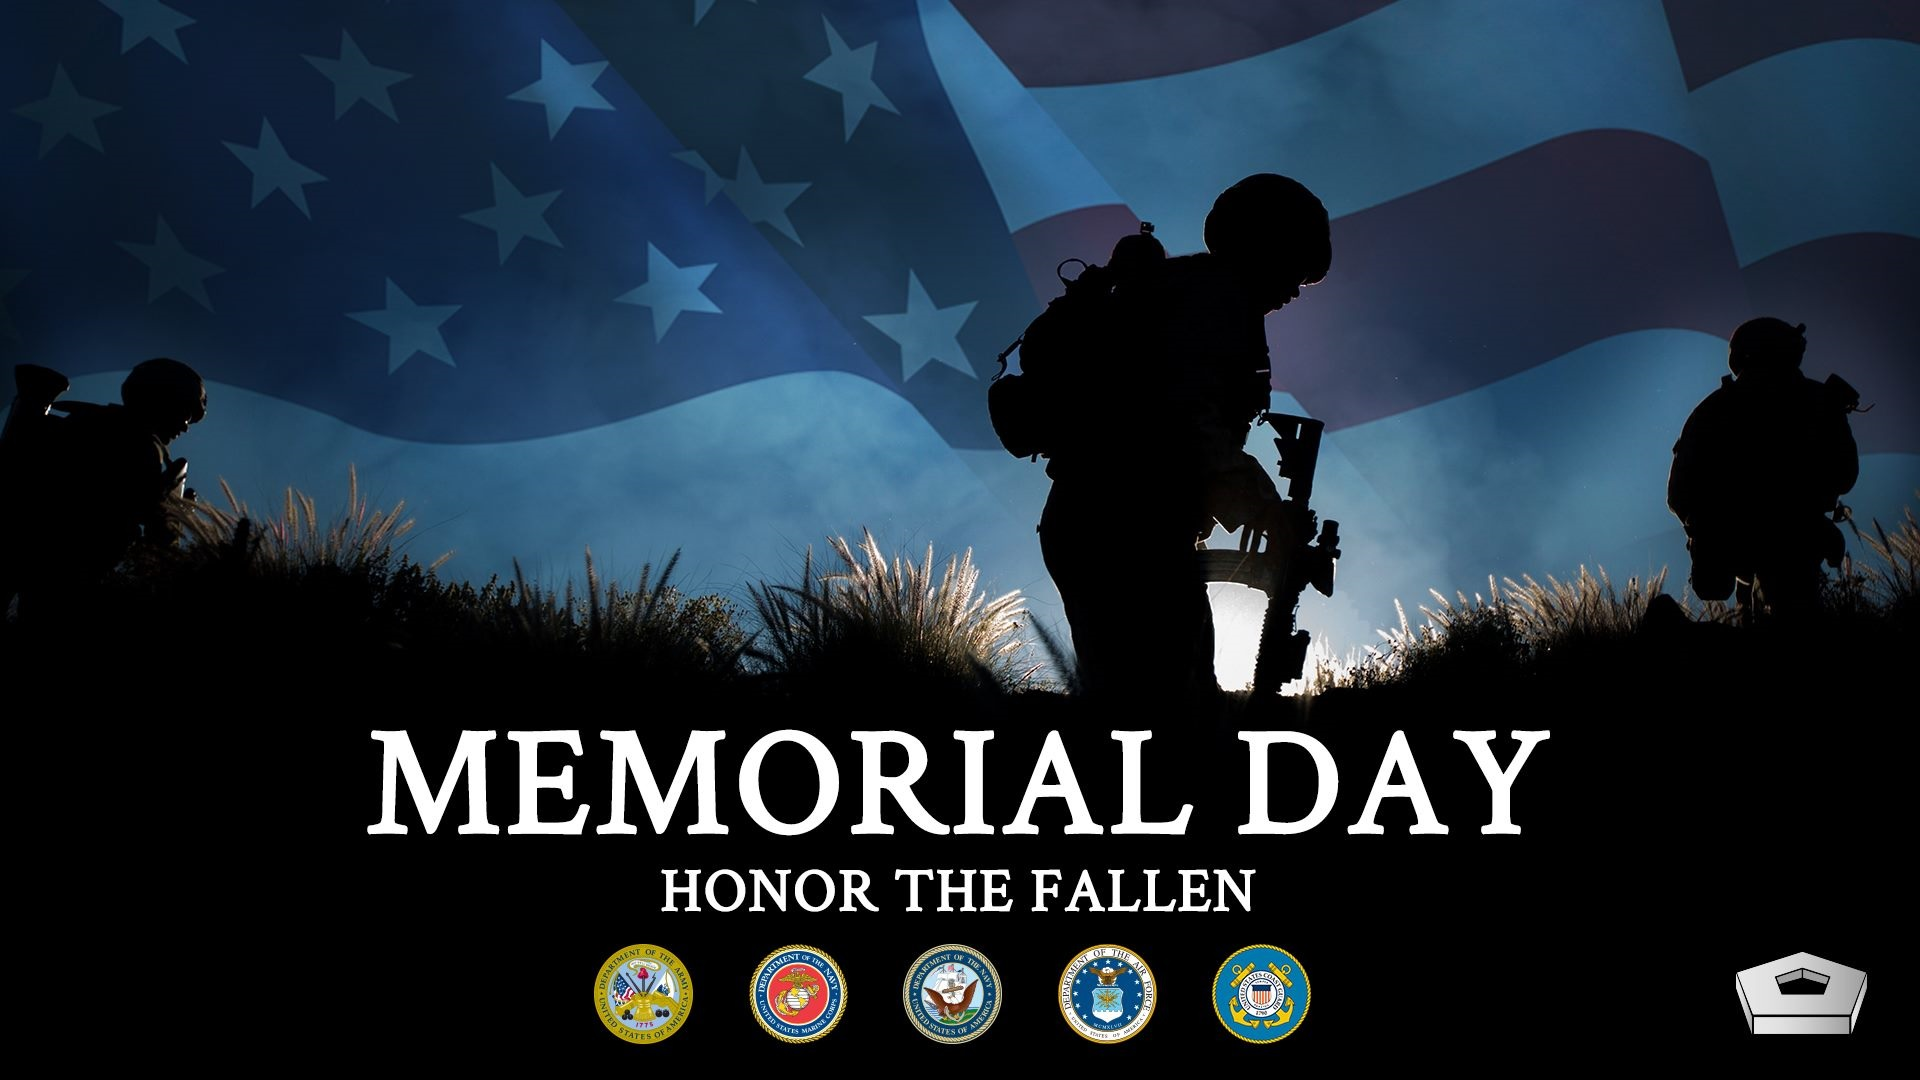 MEMORIAL DAY -MONDAY, MAY 27, 2019 @ THE UNITED STATES OF AMERICA